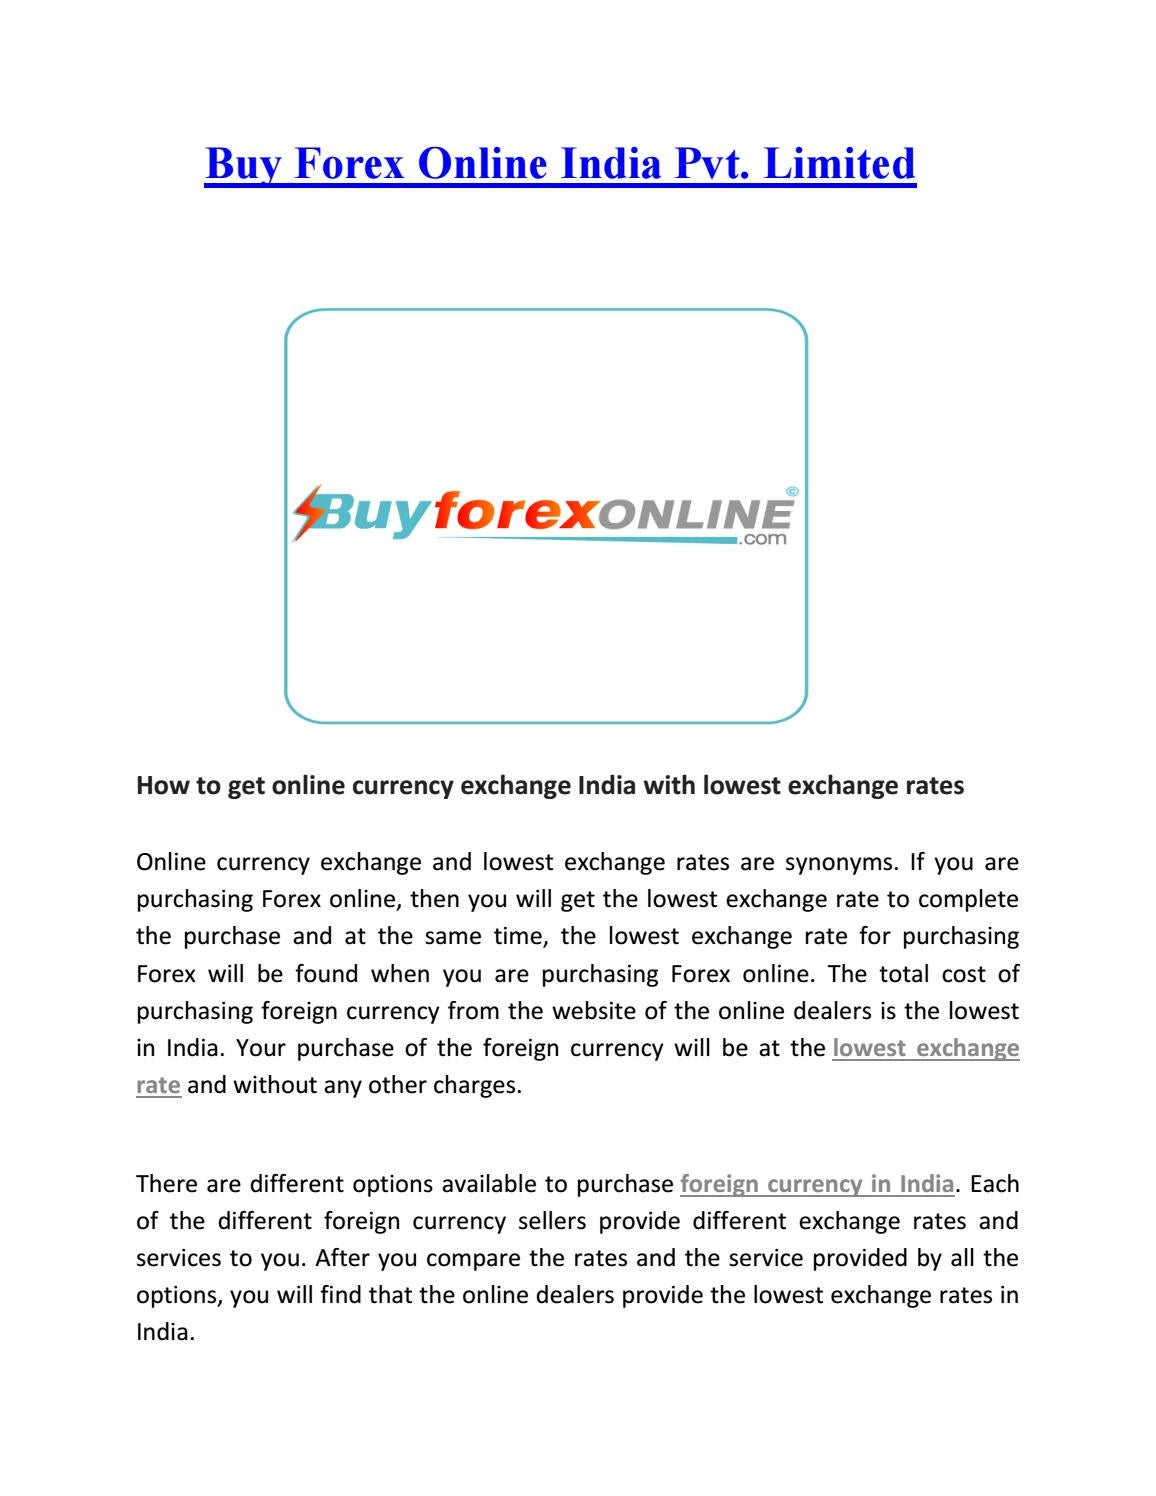 Currency Exchange India With Lowest